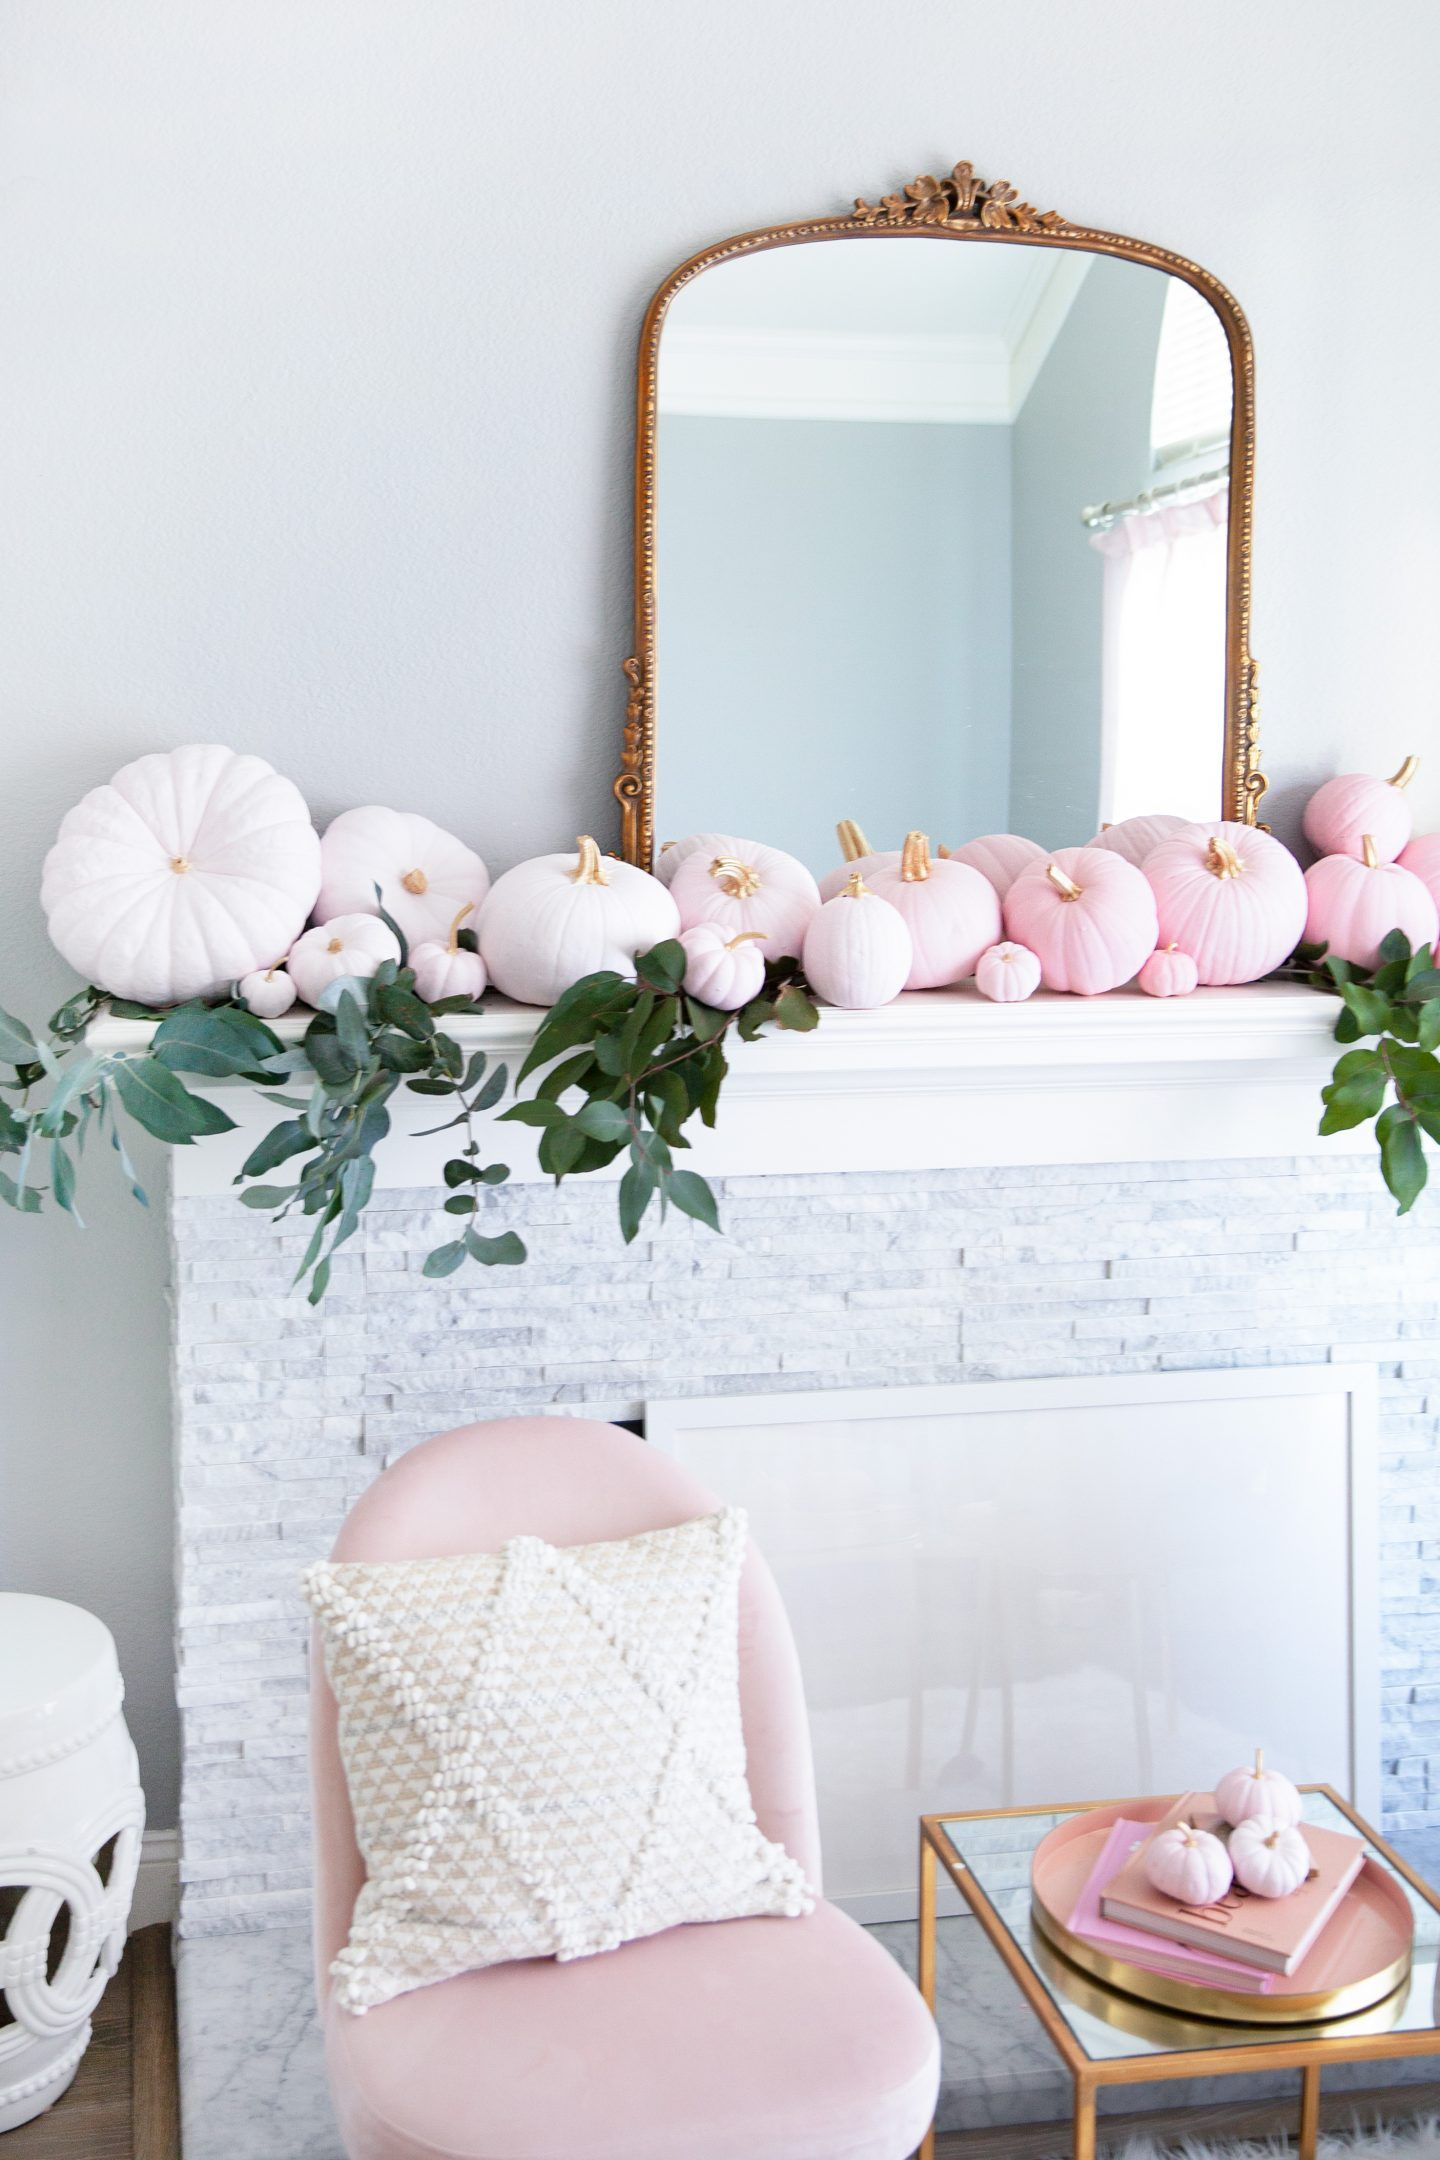 5 Step Ombre Pumpkin Decor Tutorial | Lombard and Fifth